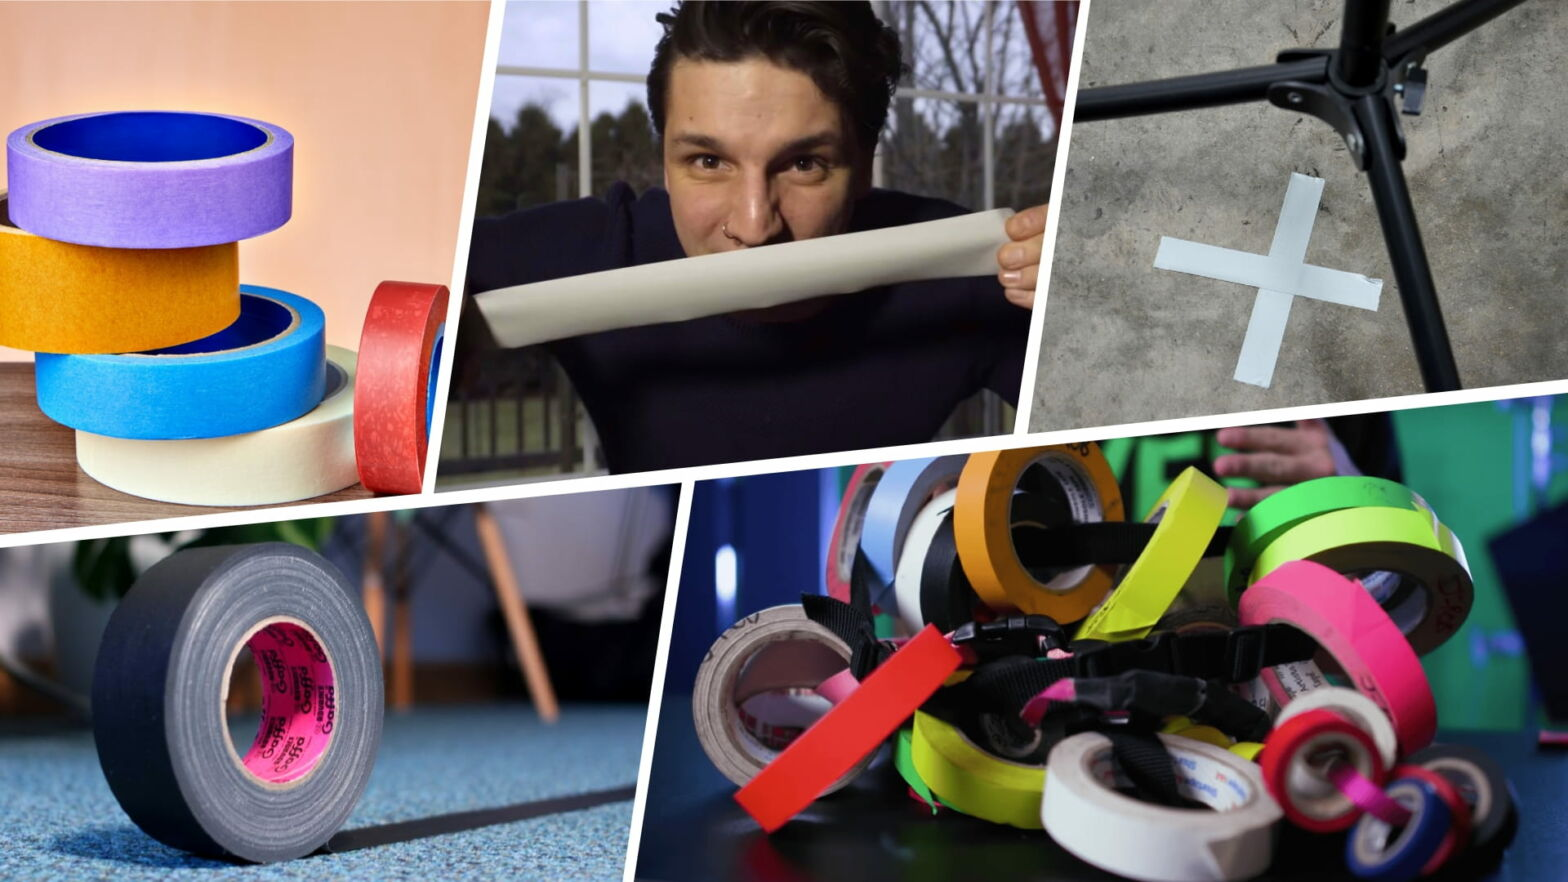 What Is Gaffer Tape Used For A Film Set Essential Explained - Featured